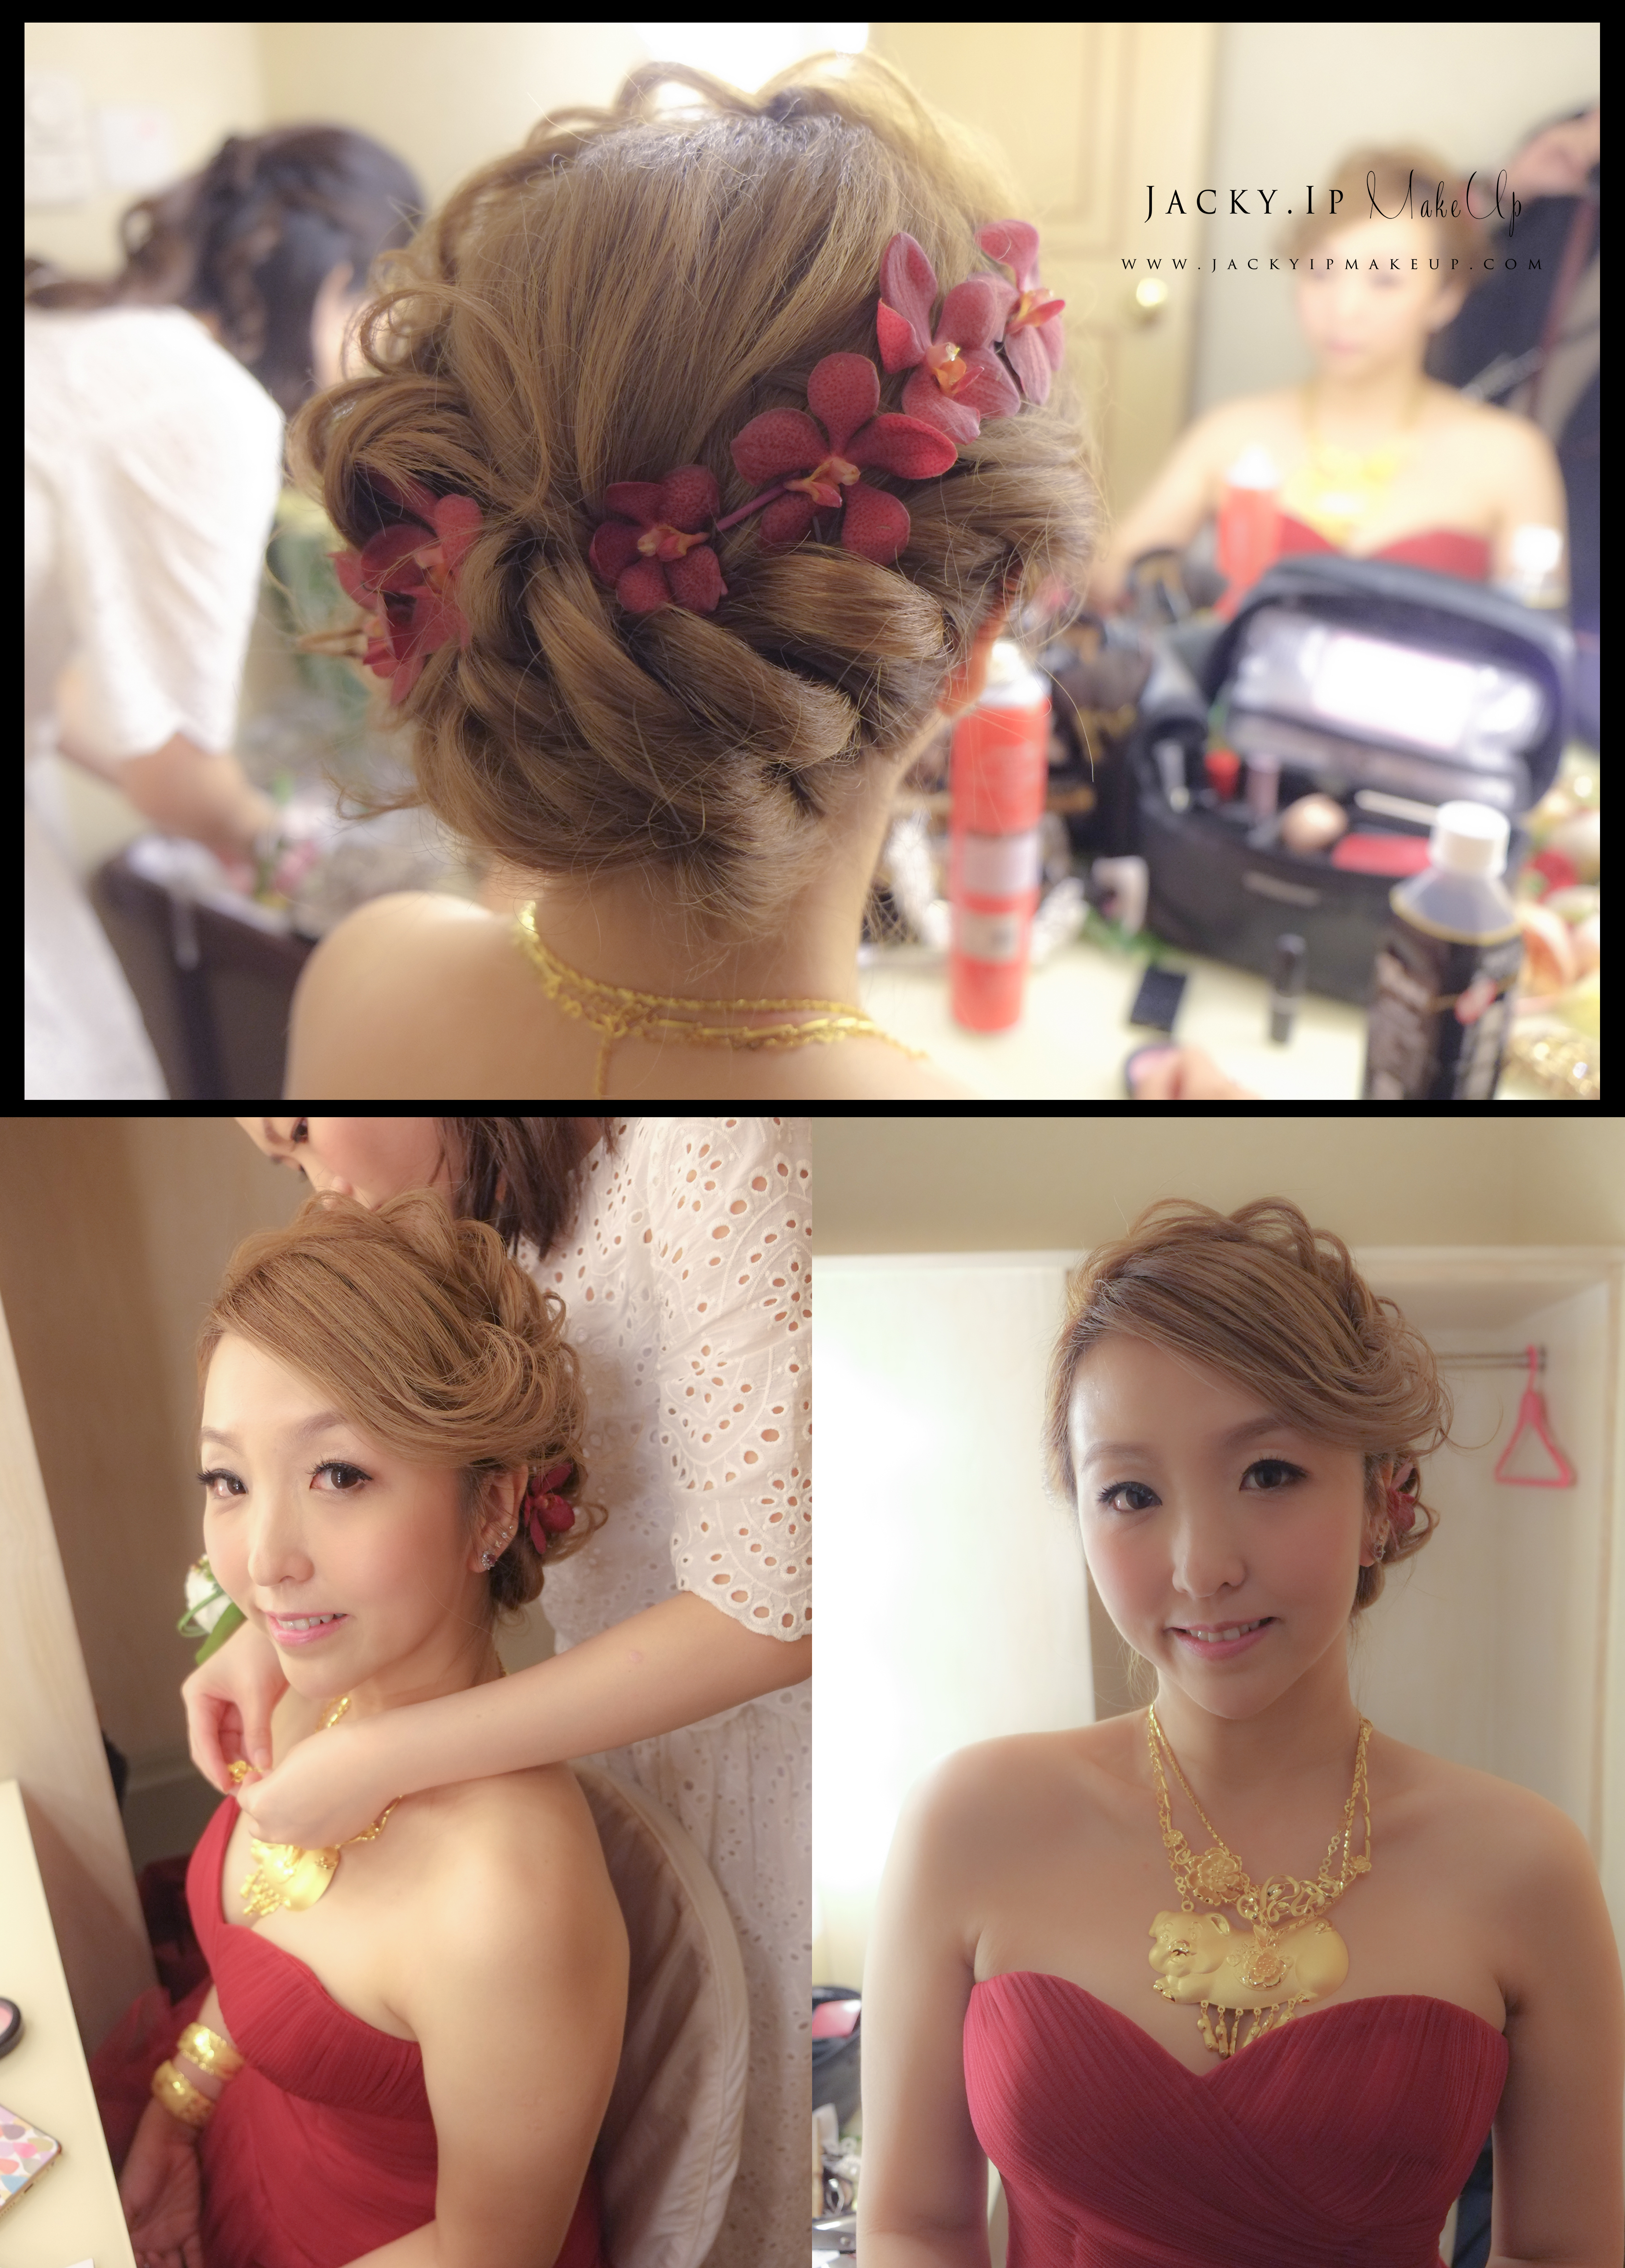 MakeUp ans Hair By Jacky.Ip